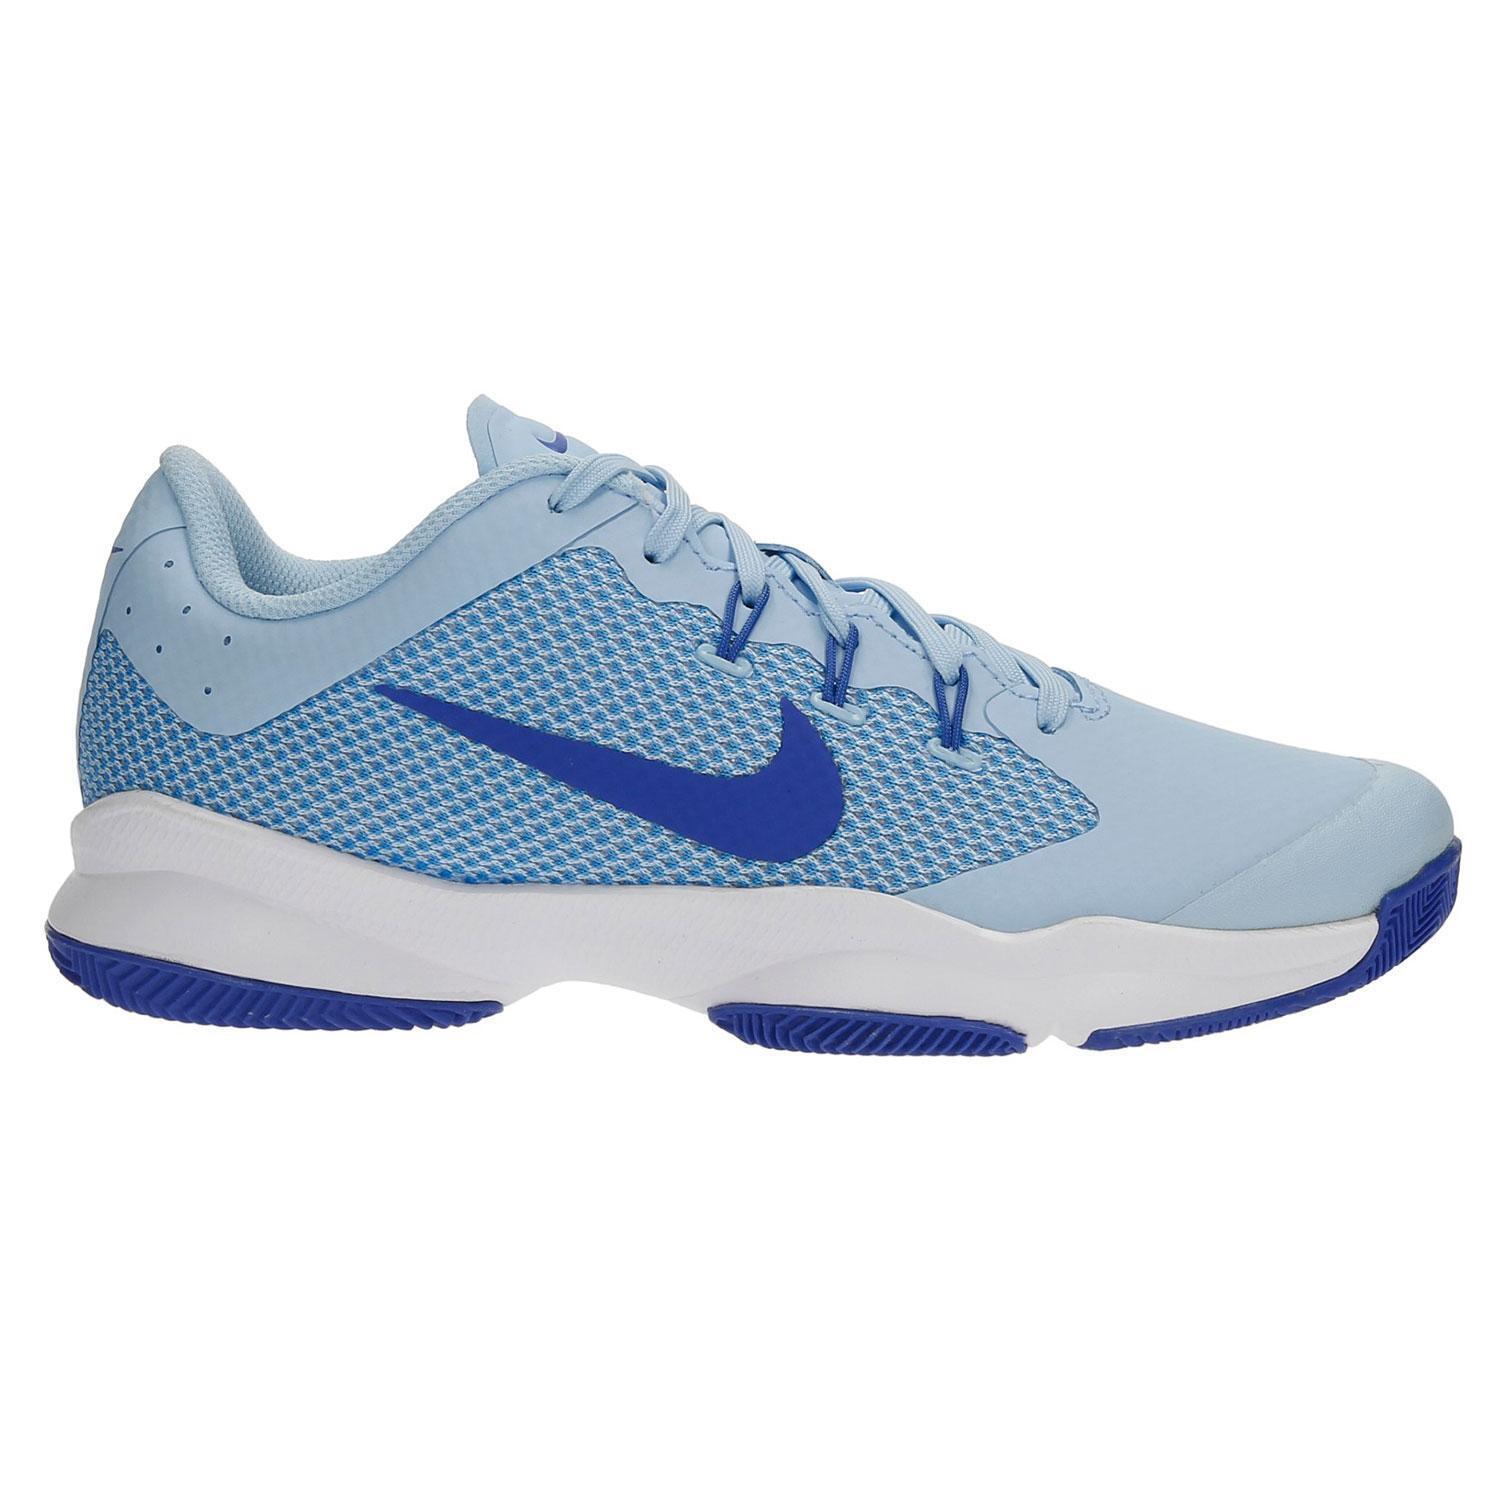 Damenschuhe NIKE AIR ZOOM ULTRA Ice Blau Tennis Trainers 845046 401